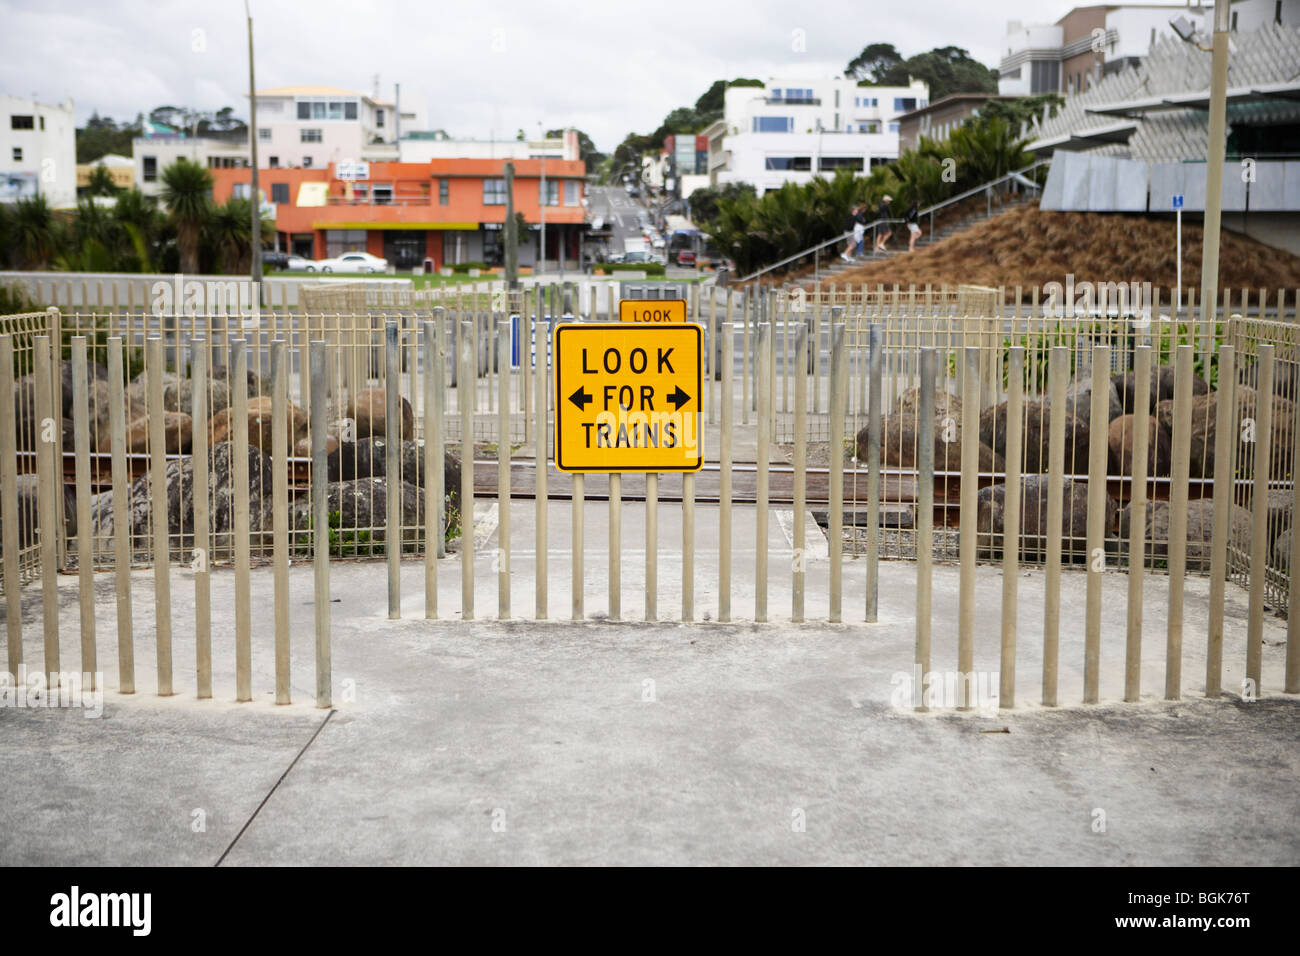 Look for trains warning sign, pedestrian crossing, New Plymouth, New Zealand - Stock Image